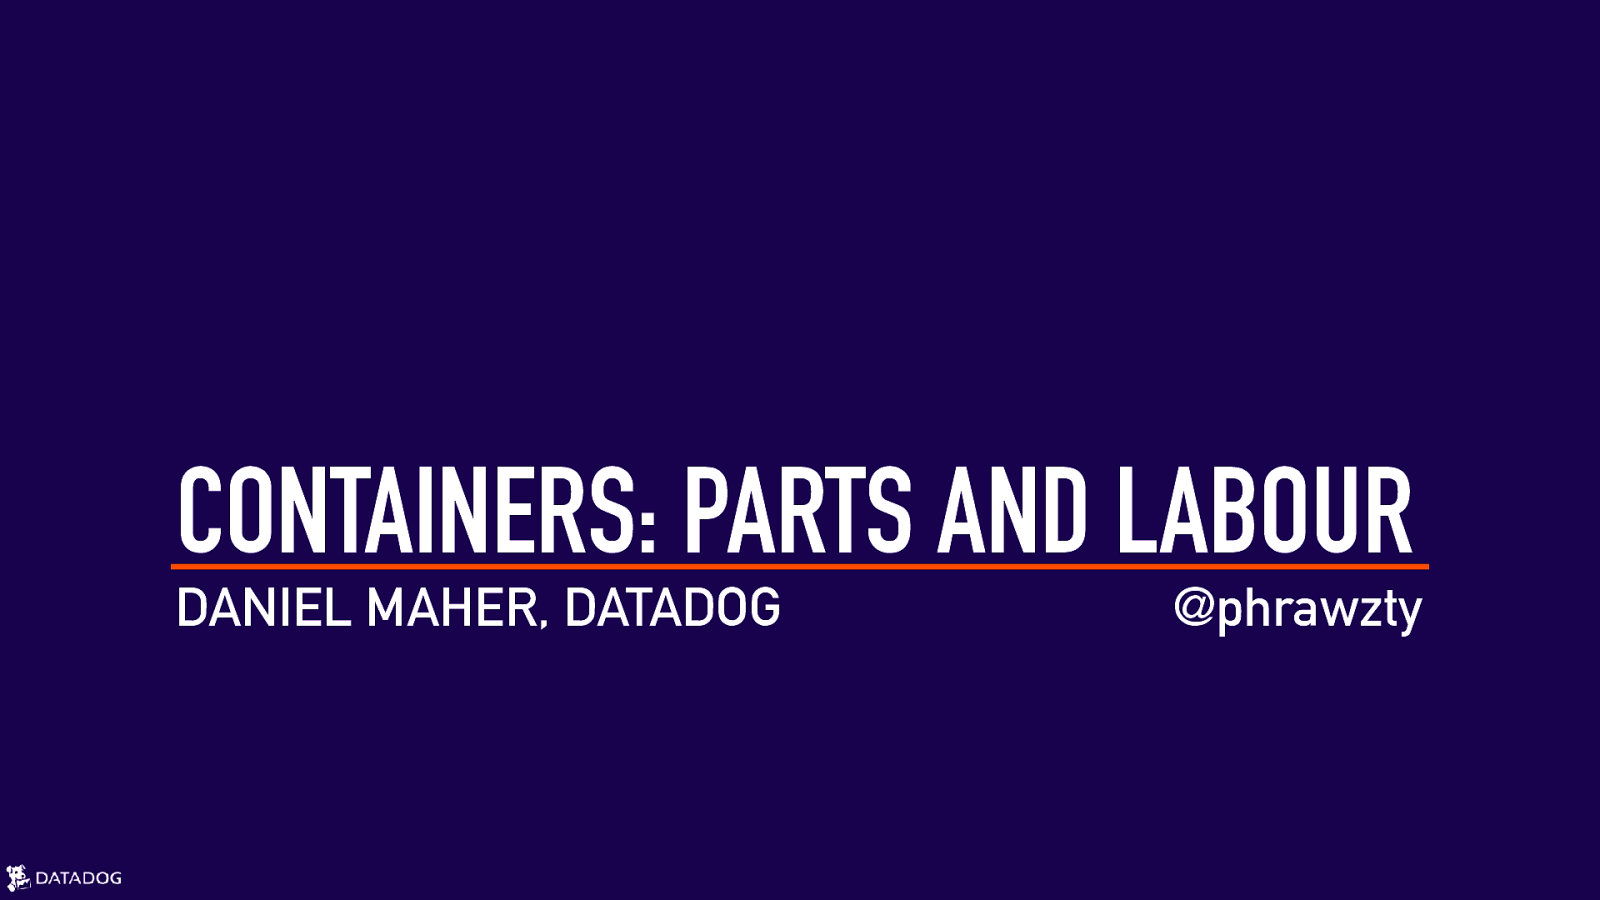 Containers: Parts and Labour